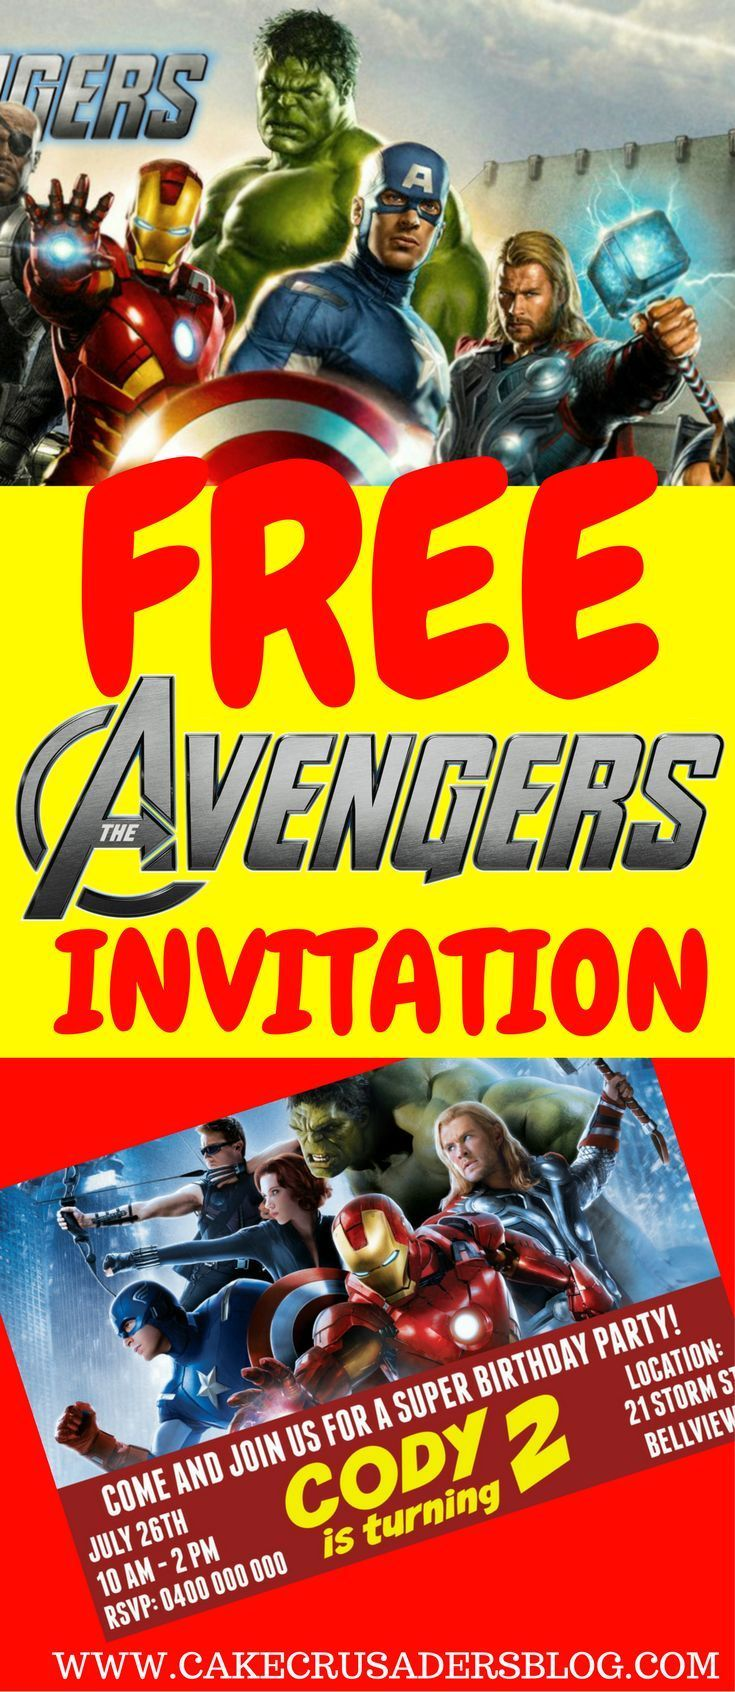 Free Diy Avengers Party Invitation Template How To Make Ellierosepartydesigns Com Avengers Party Invitation Avengers Party Superhero Invitations